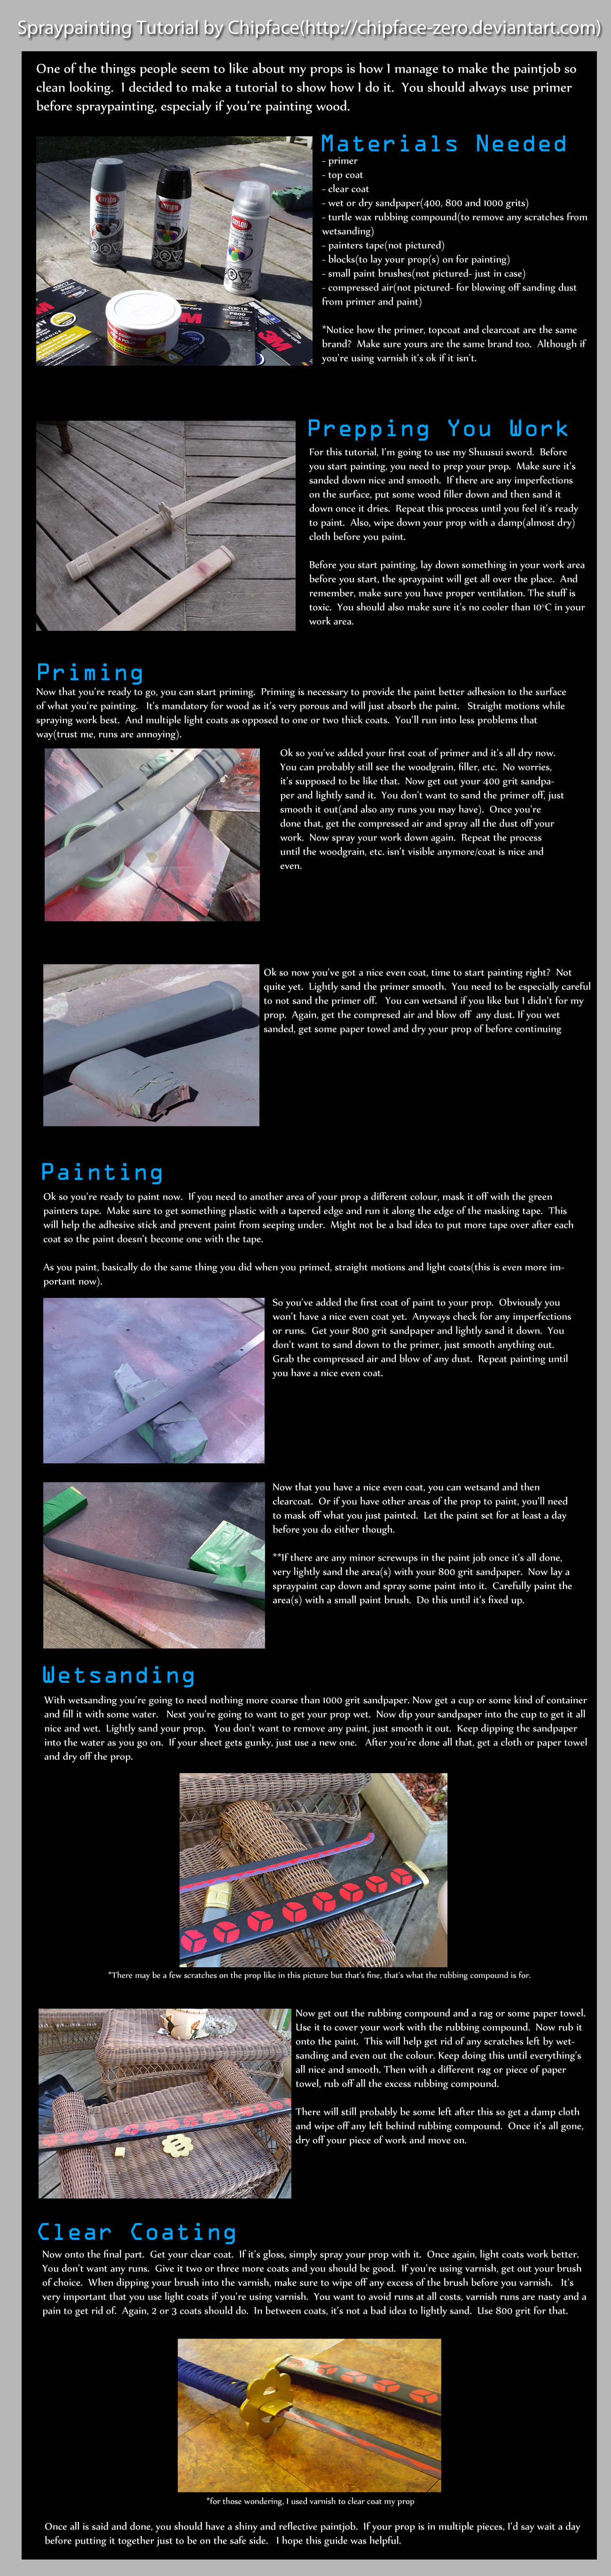 spraypainting tutorial